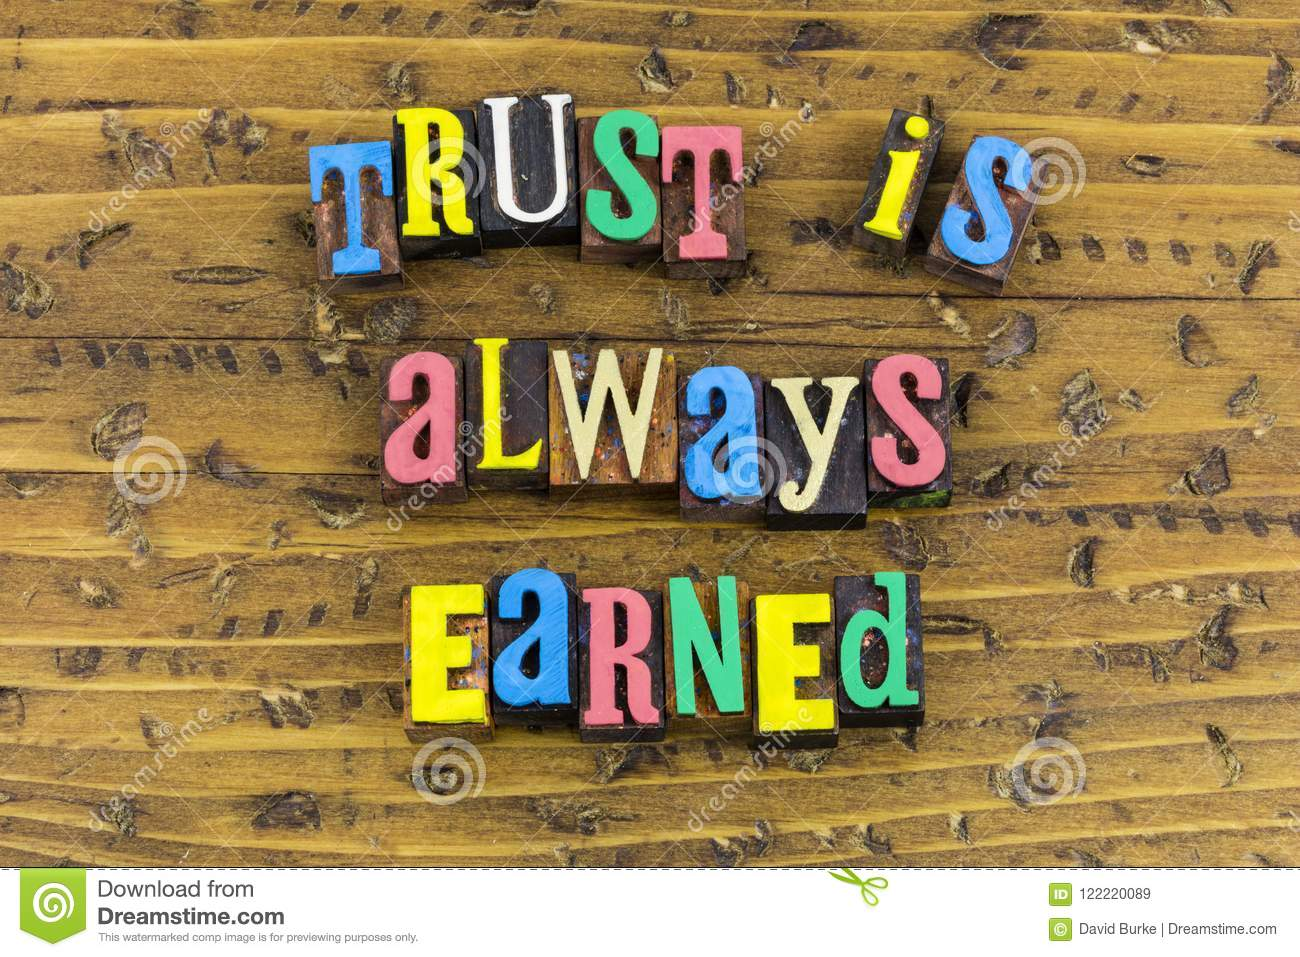 Trust earned honesty support